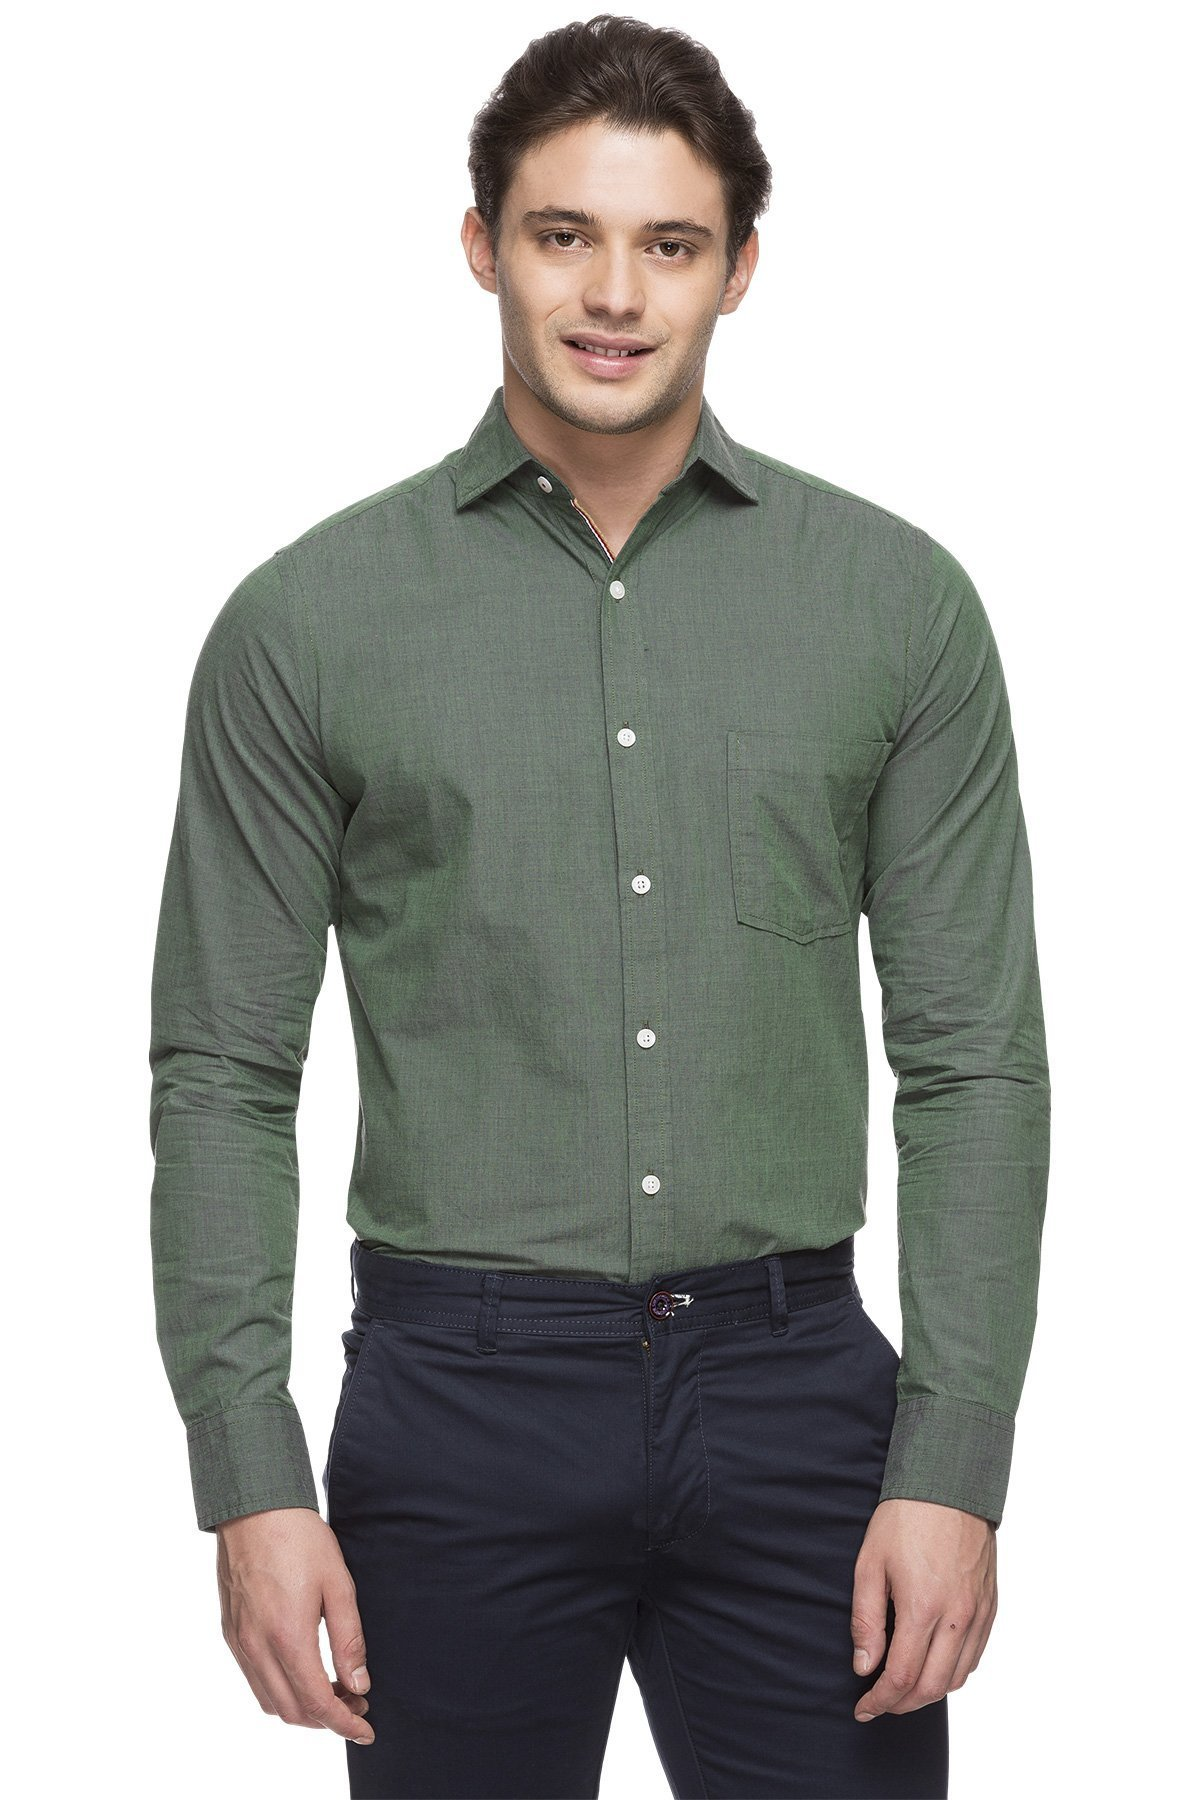 Reasons why Every Person love to wear Cotton Shirts